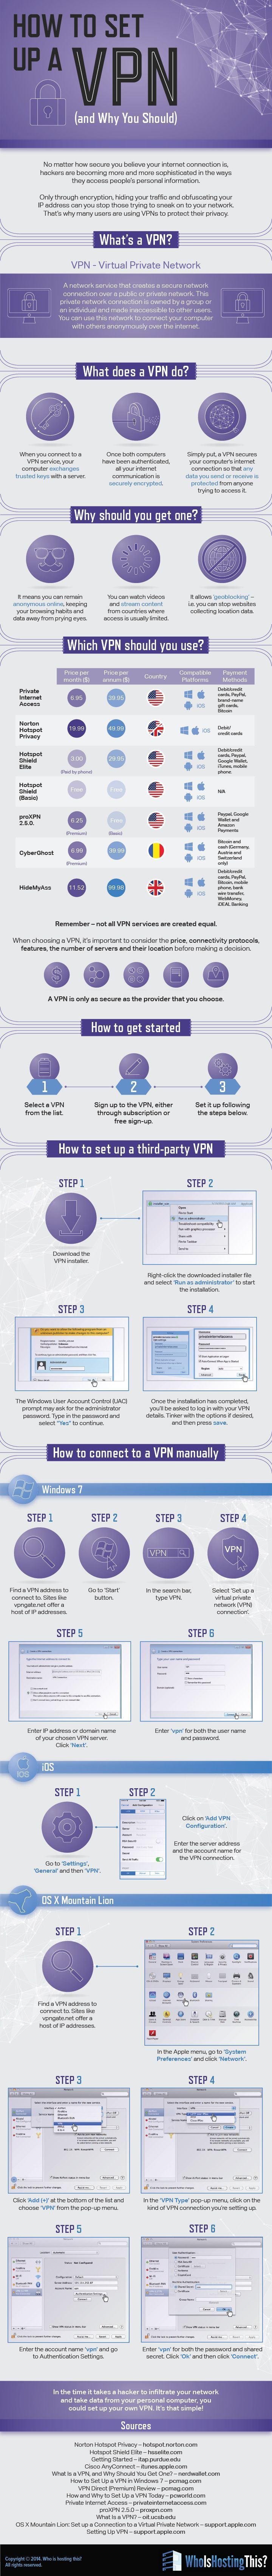 How to set up a VPN (and why you should) - Imgur